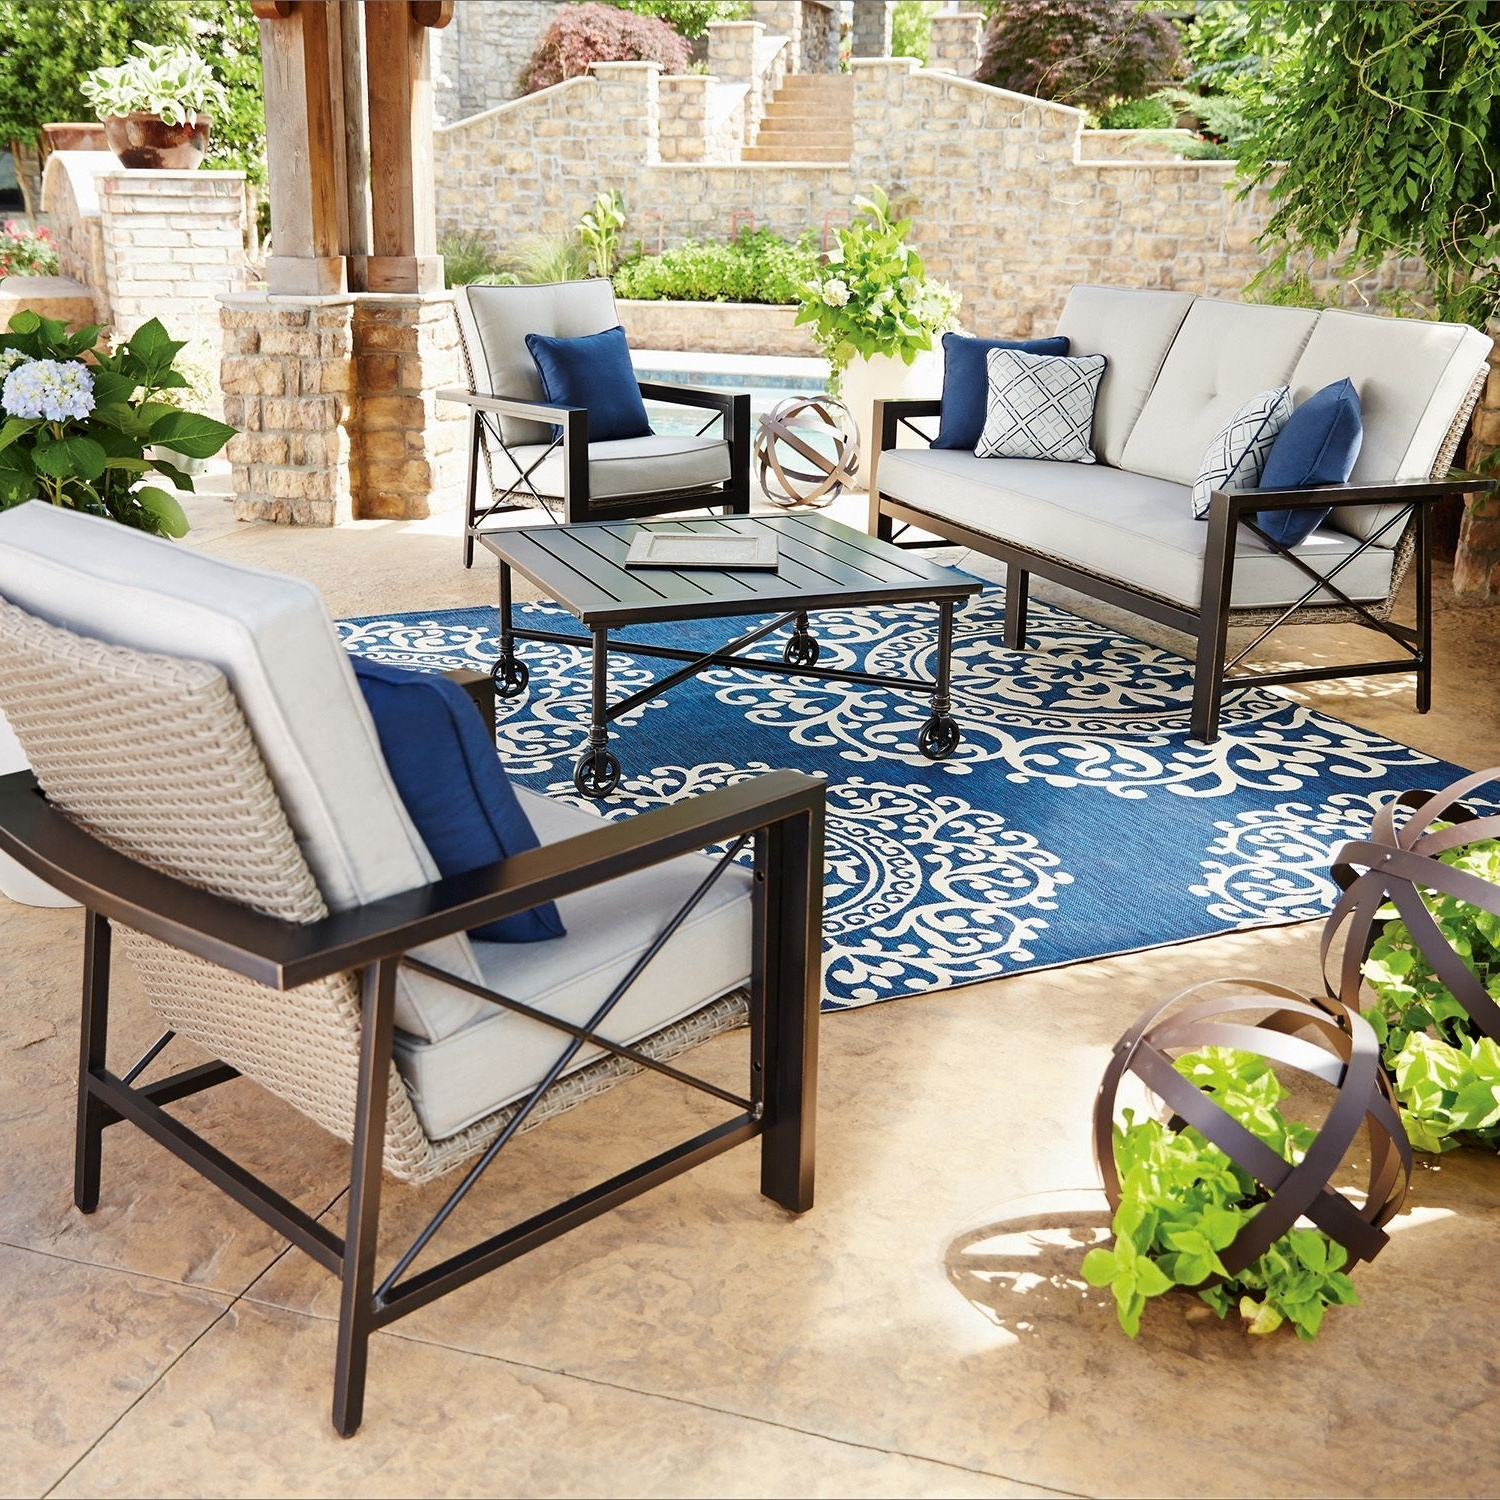 Katana, Backyard And Within Patio Conversation Sets At Sam's Club (Gallery 12 of 20)